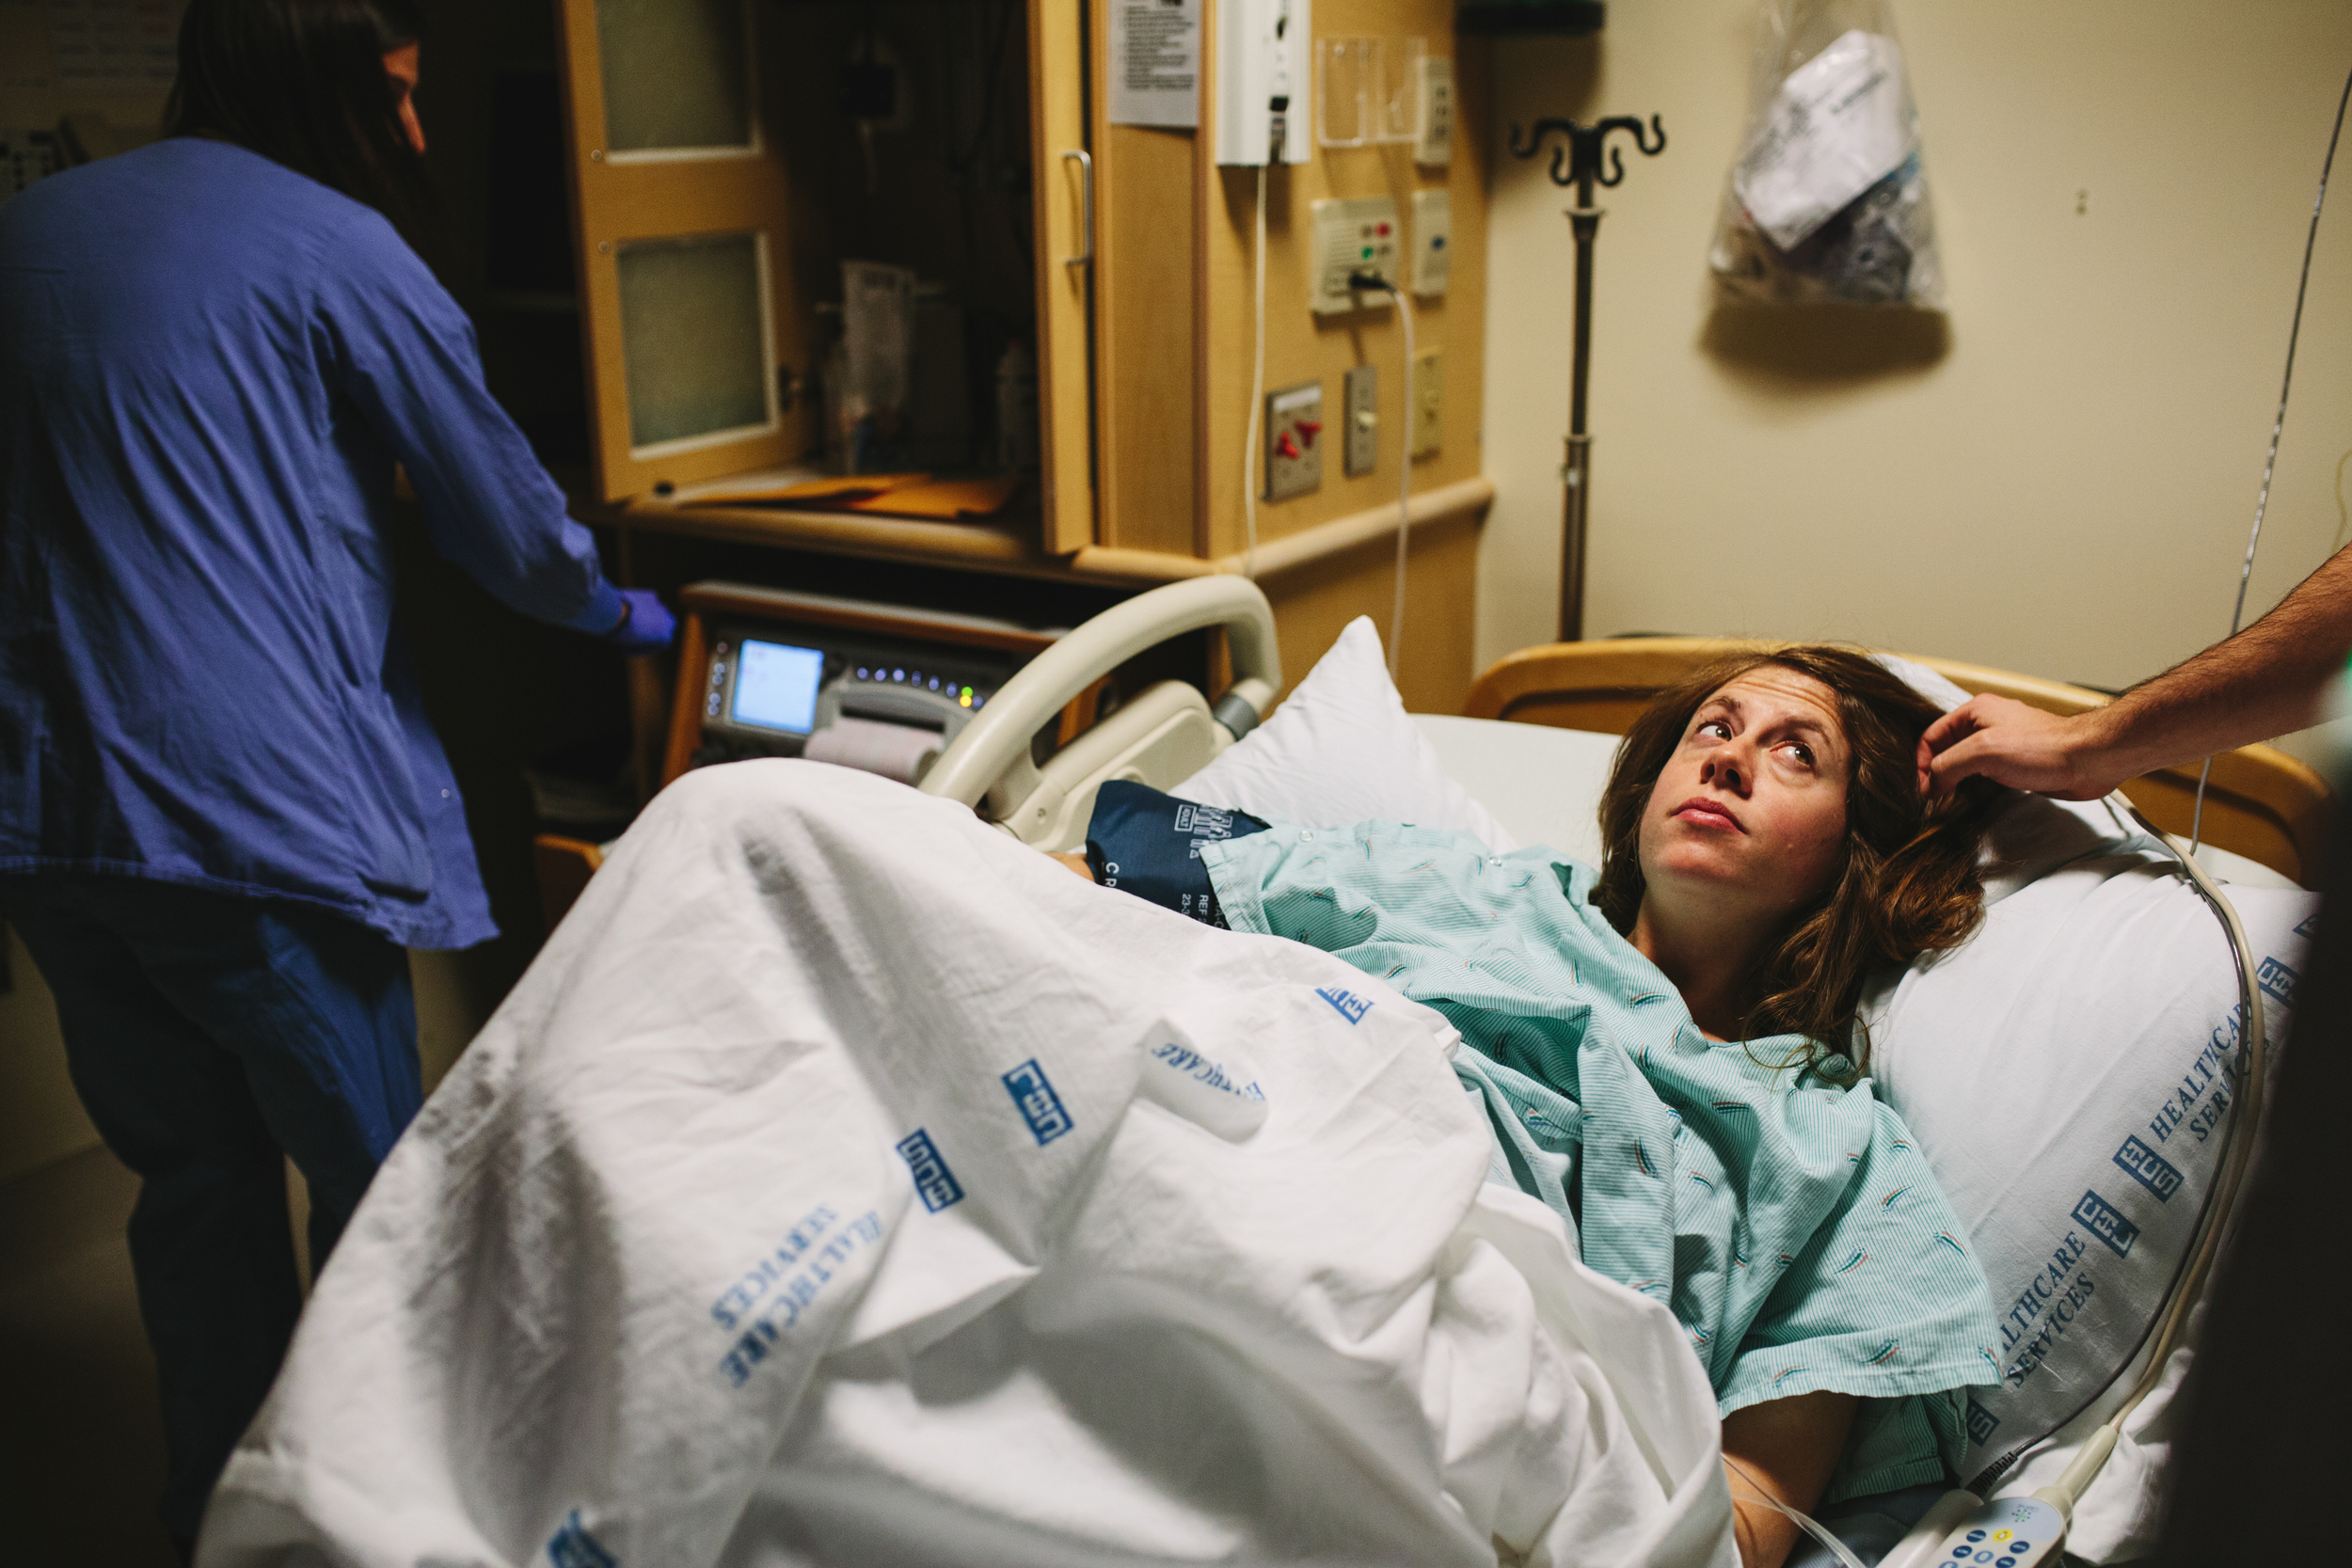 I arrived at the hospital around 11:30pm, and Ingrid had just begun to go into labor proper.